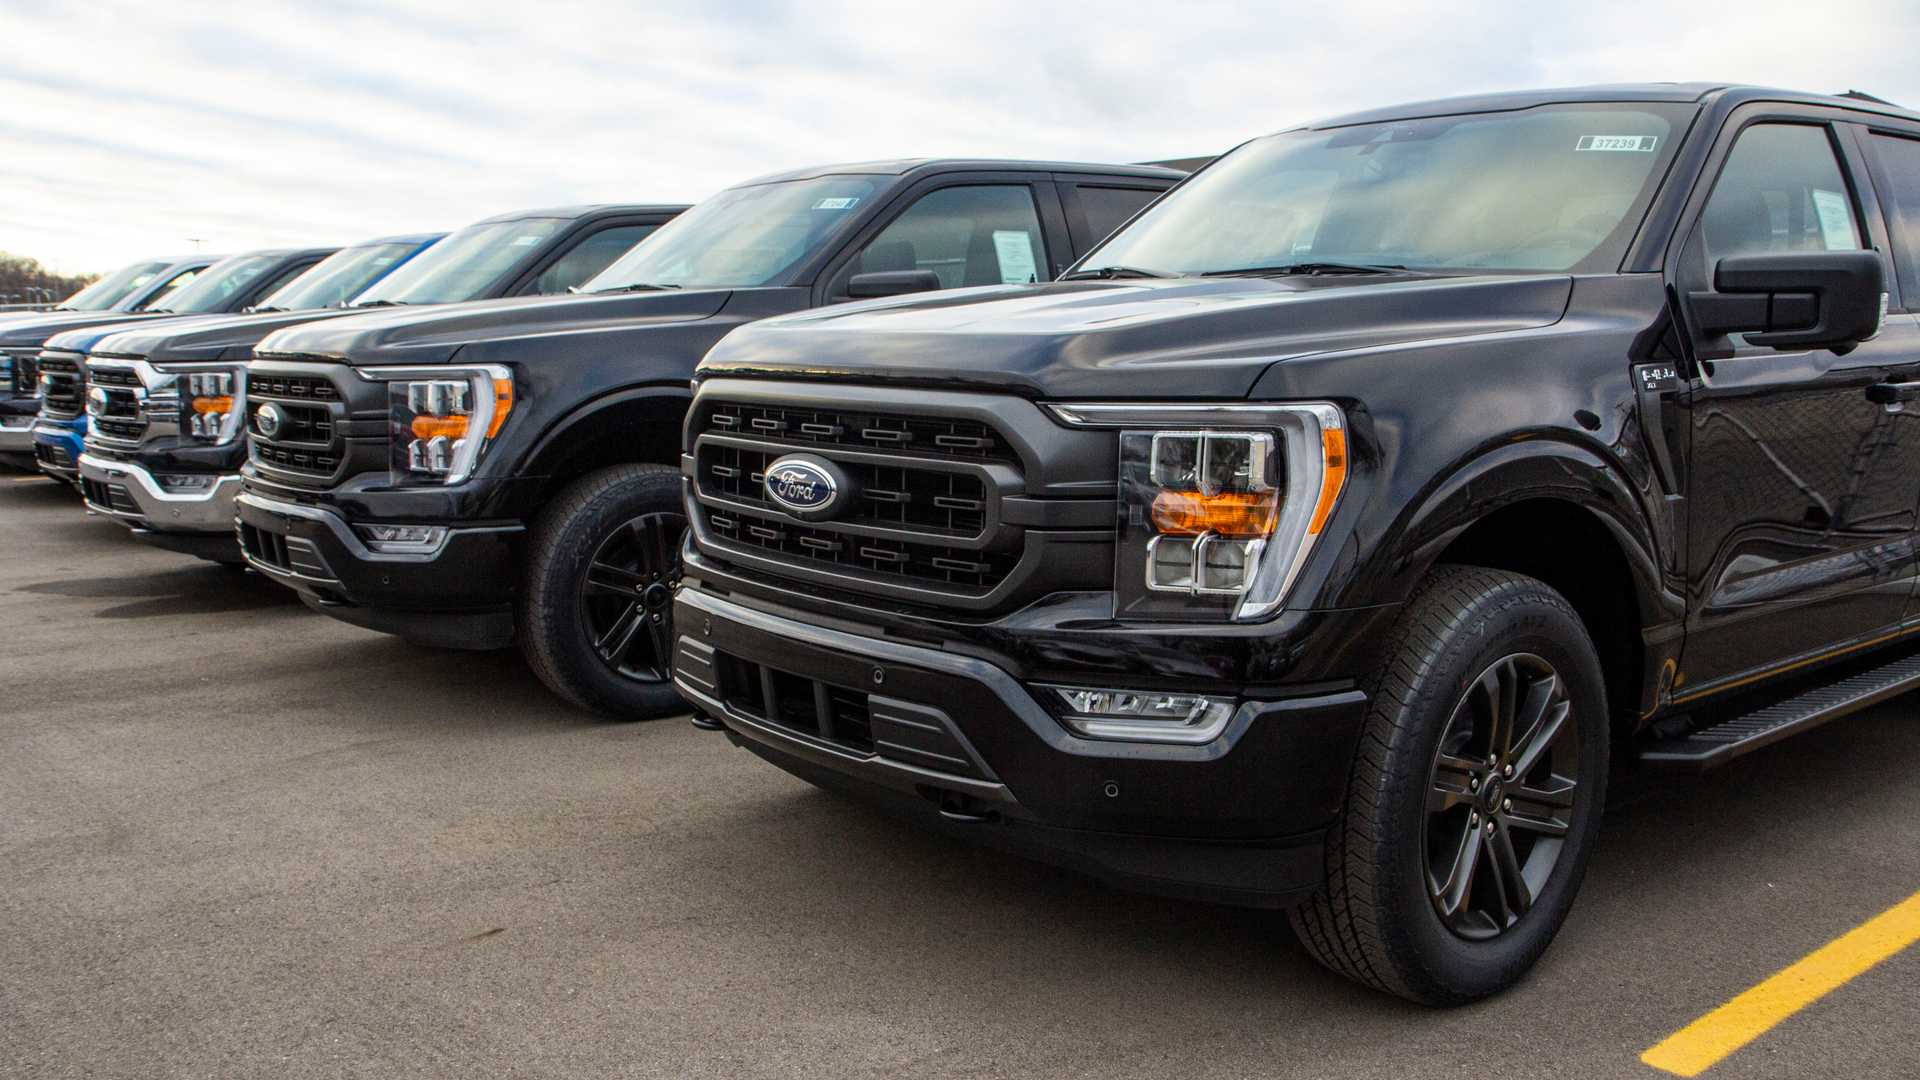 Ford Vows Boost In Quality For Newly Launched Vehicles